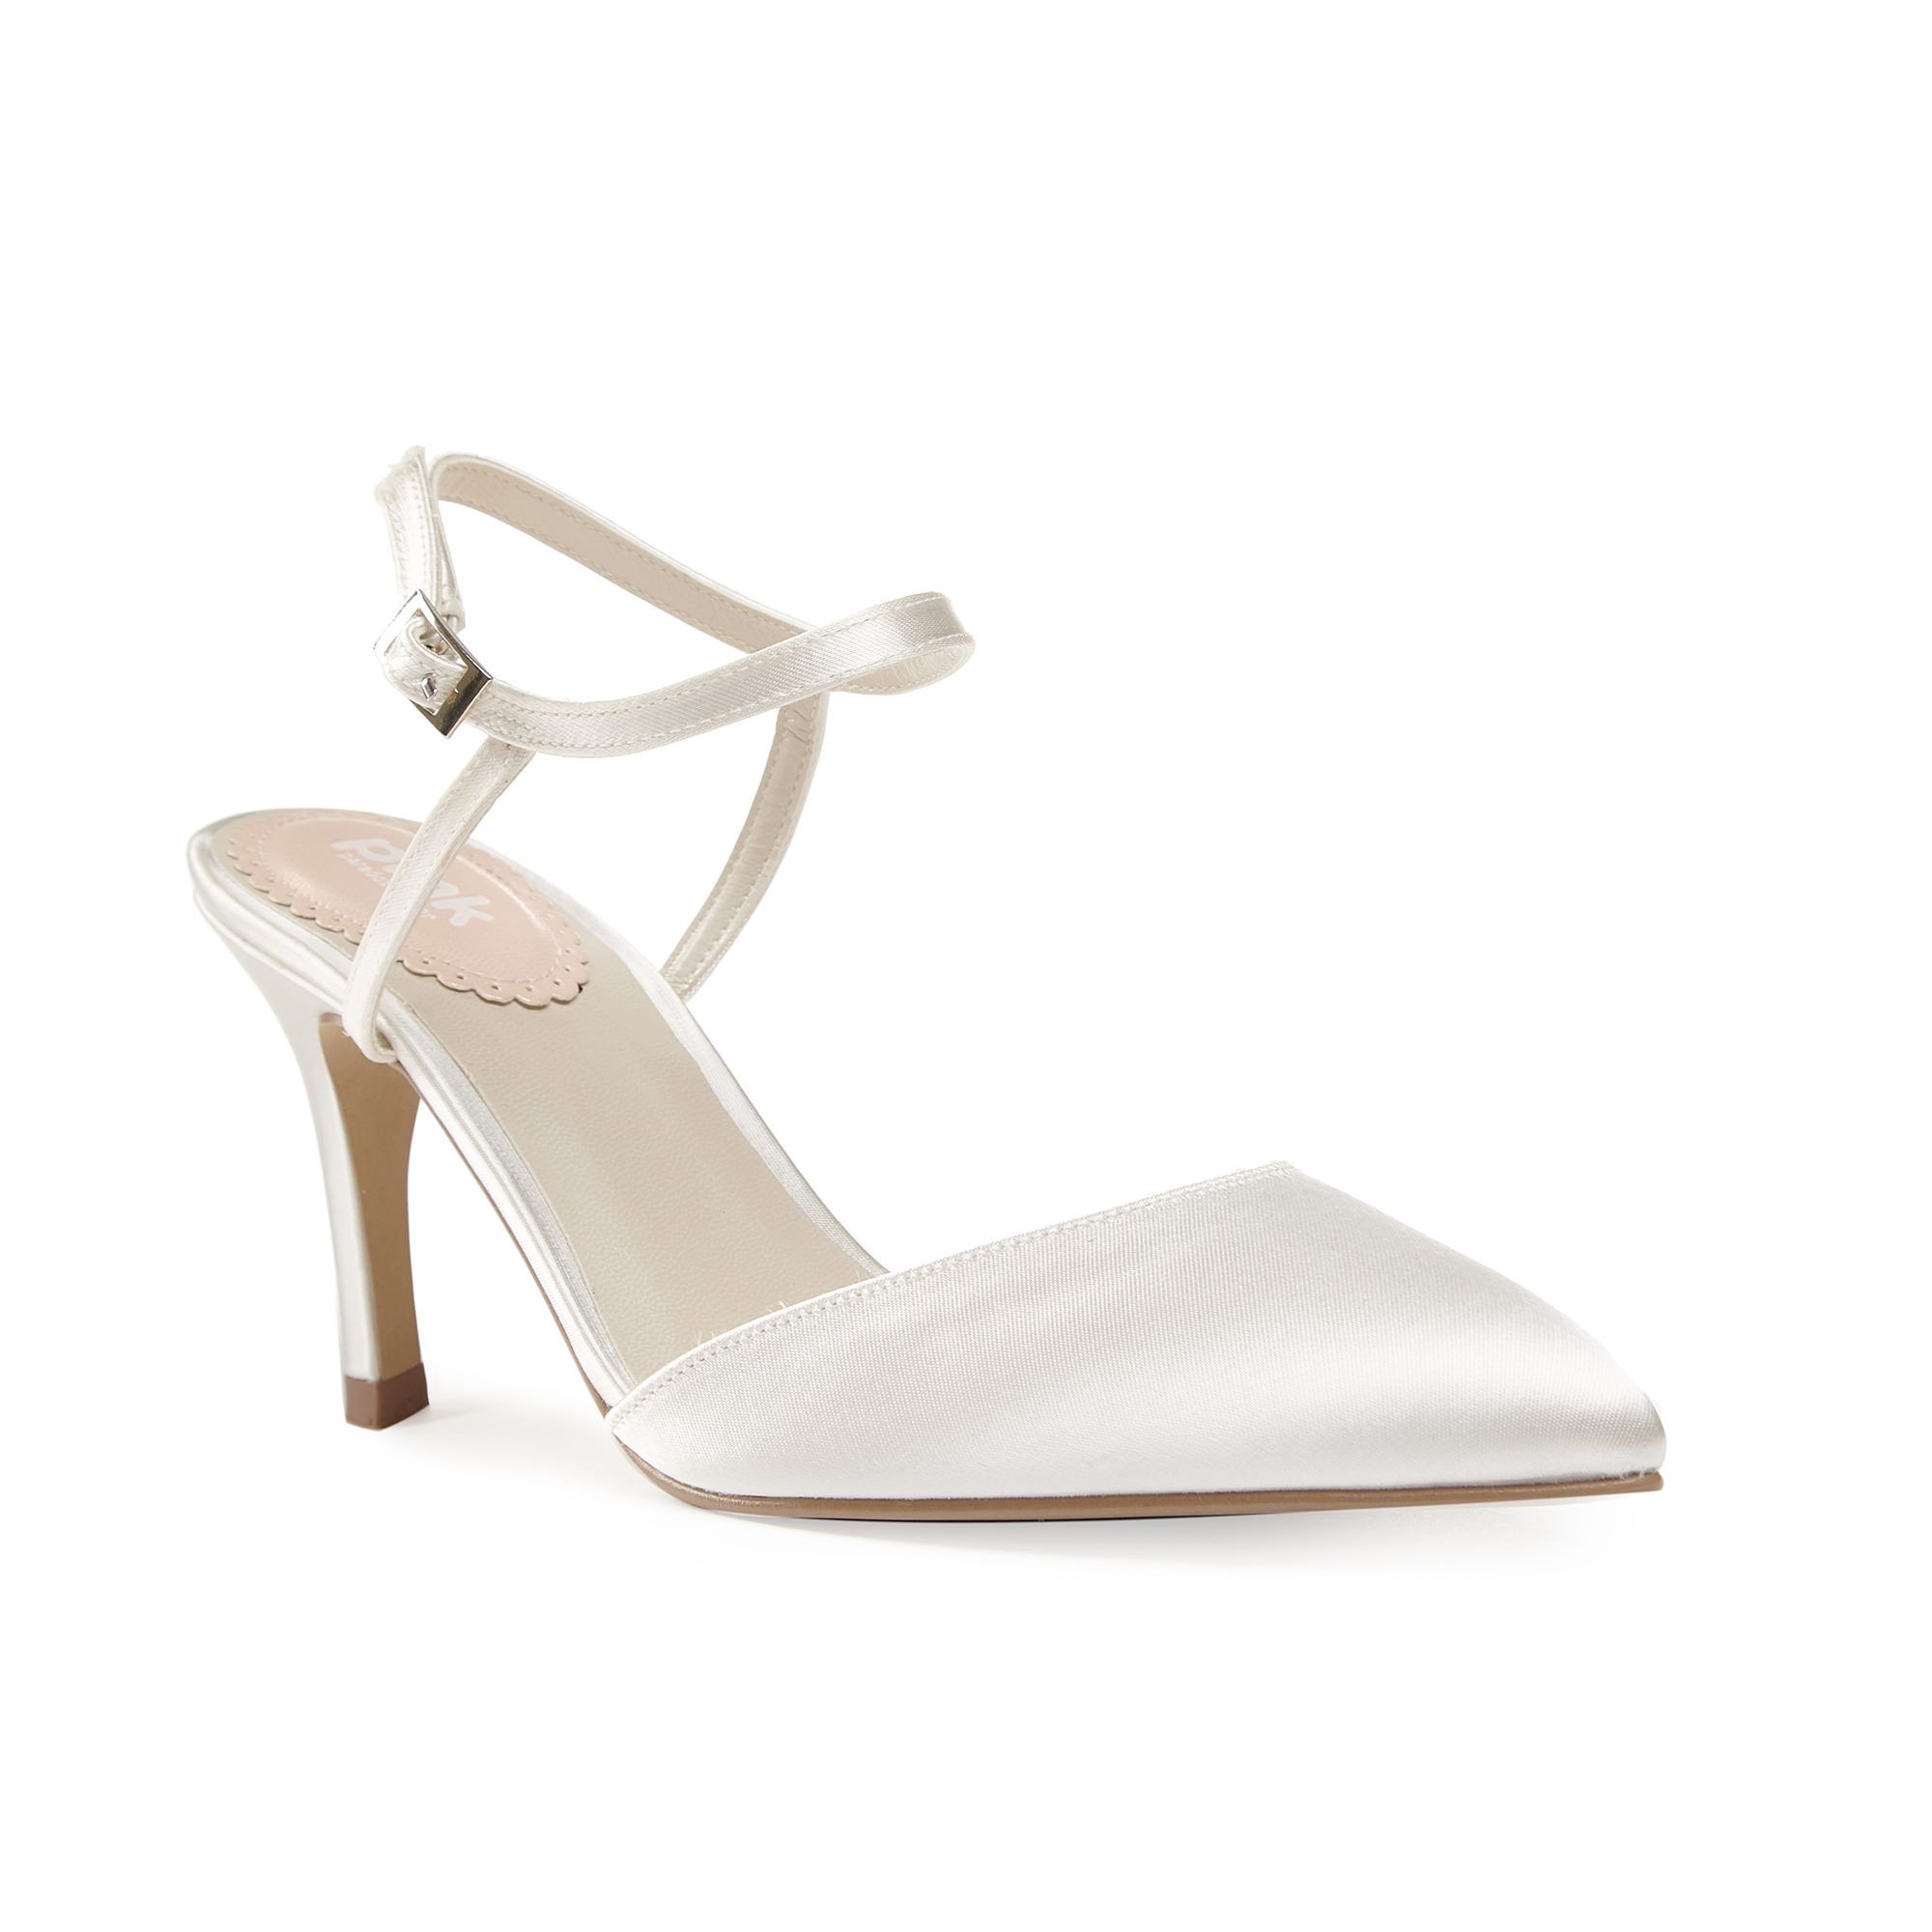 Paradox London Pink Paradox London Pink Honesty pointed toe d`orsay court shoes, Cream